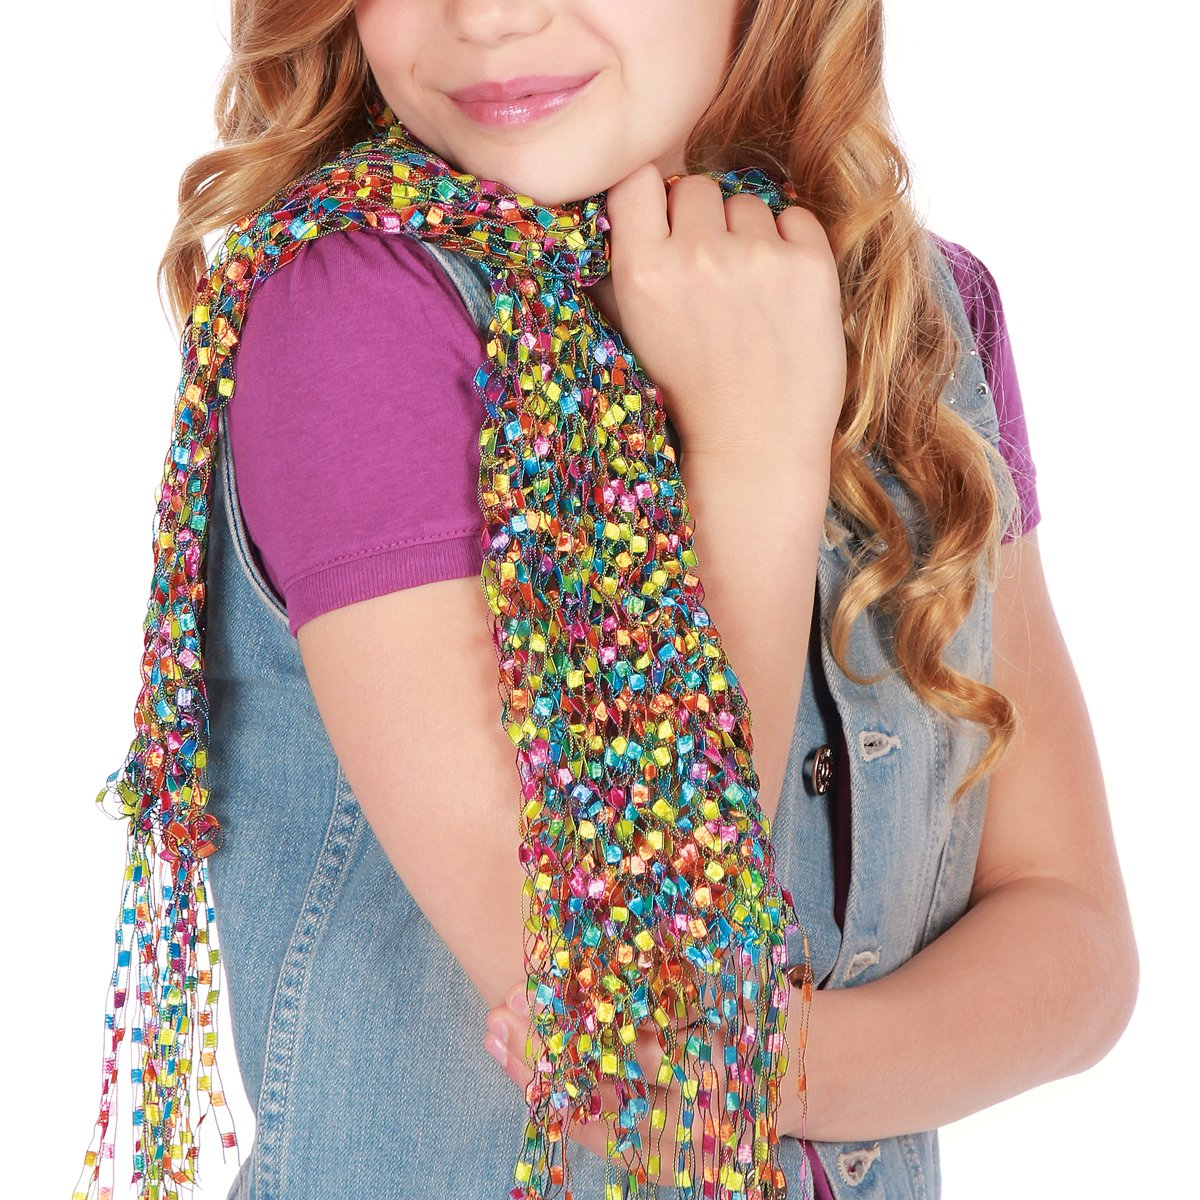 Your tween girl can make one of these scarves!